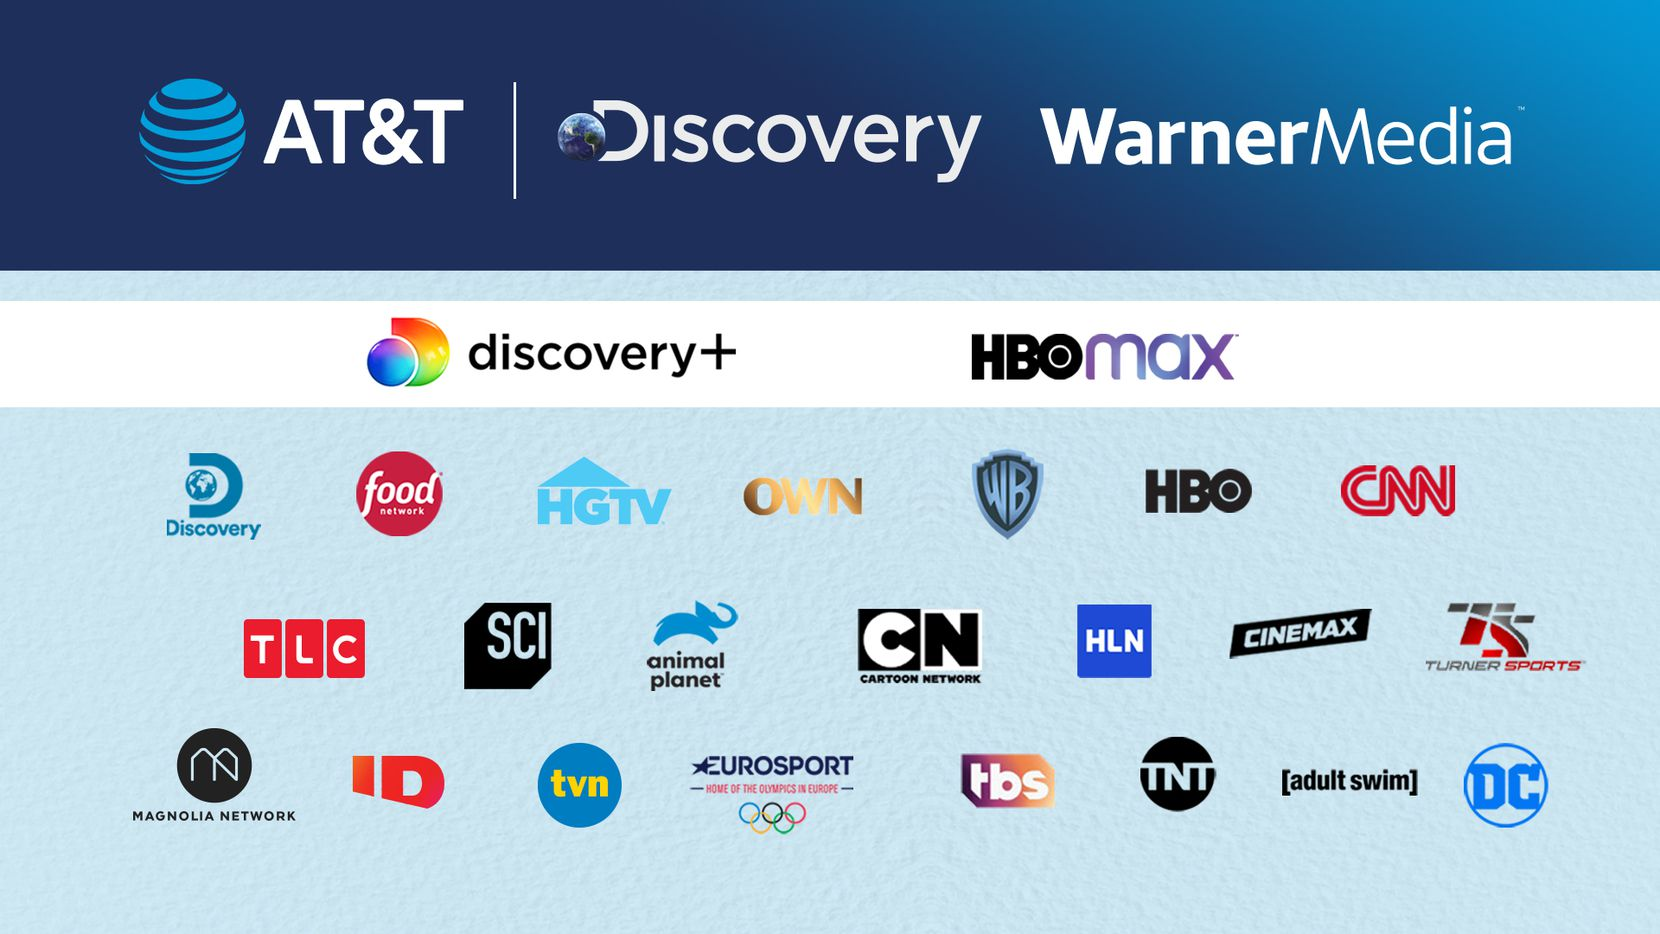 AT&T's deal with Discovery creates a formidable content company.